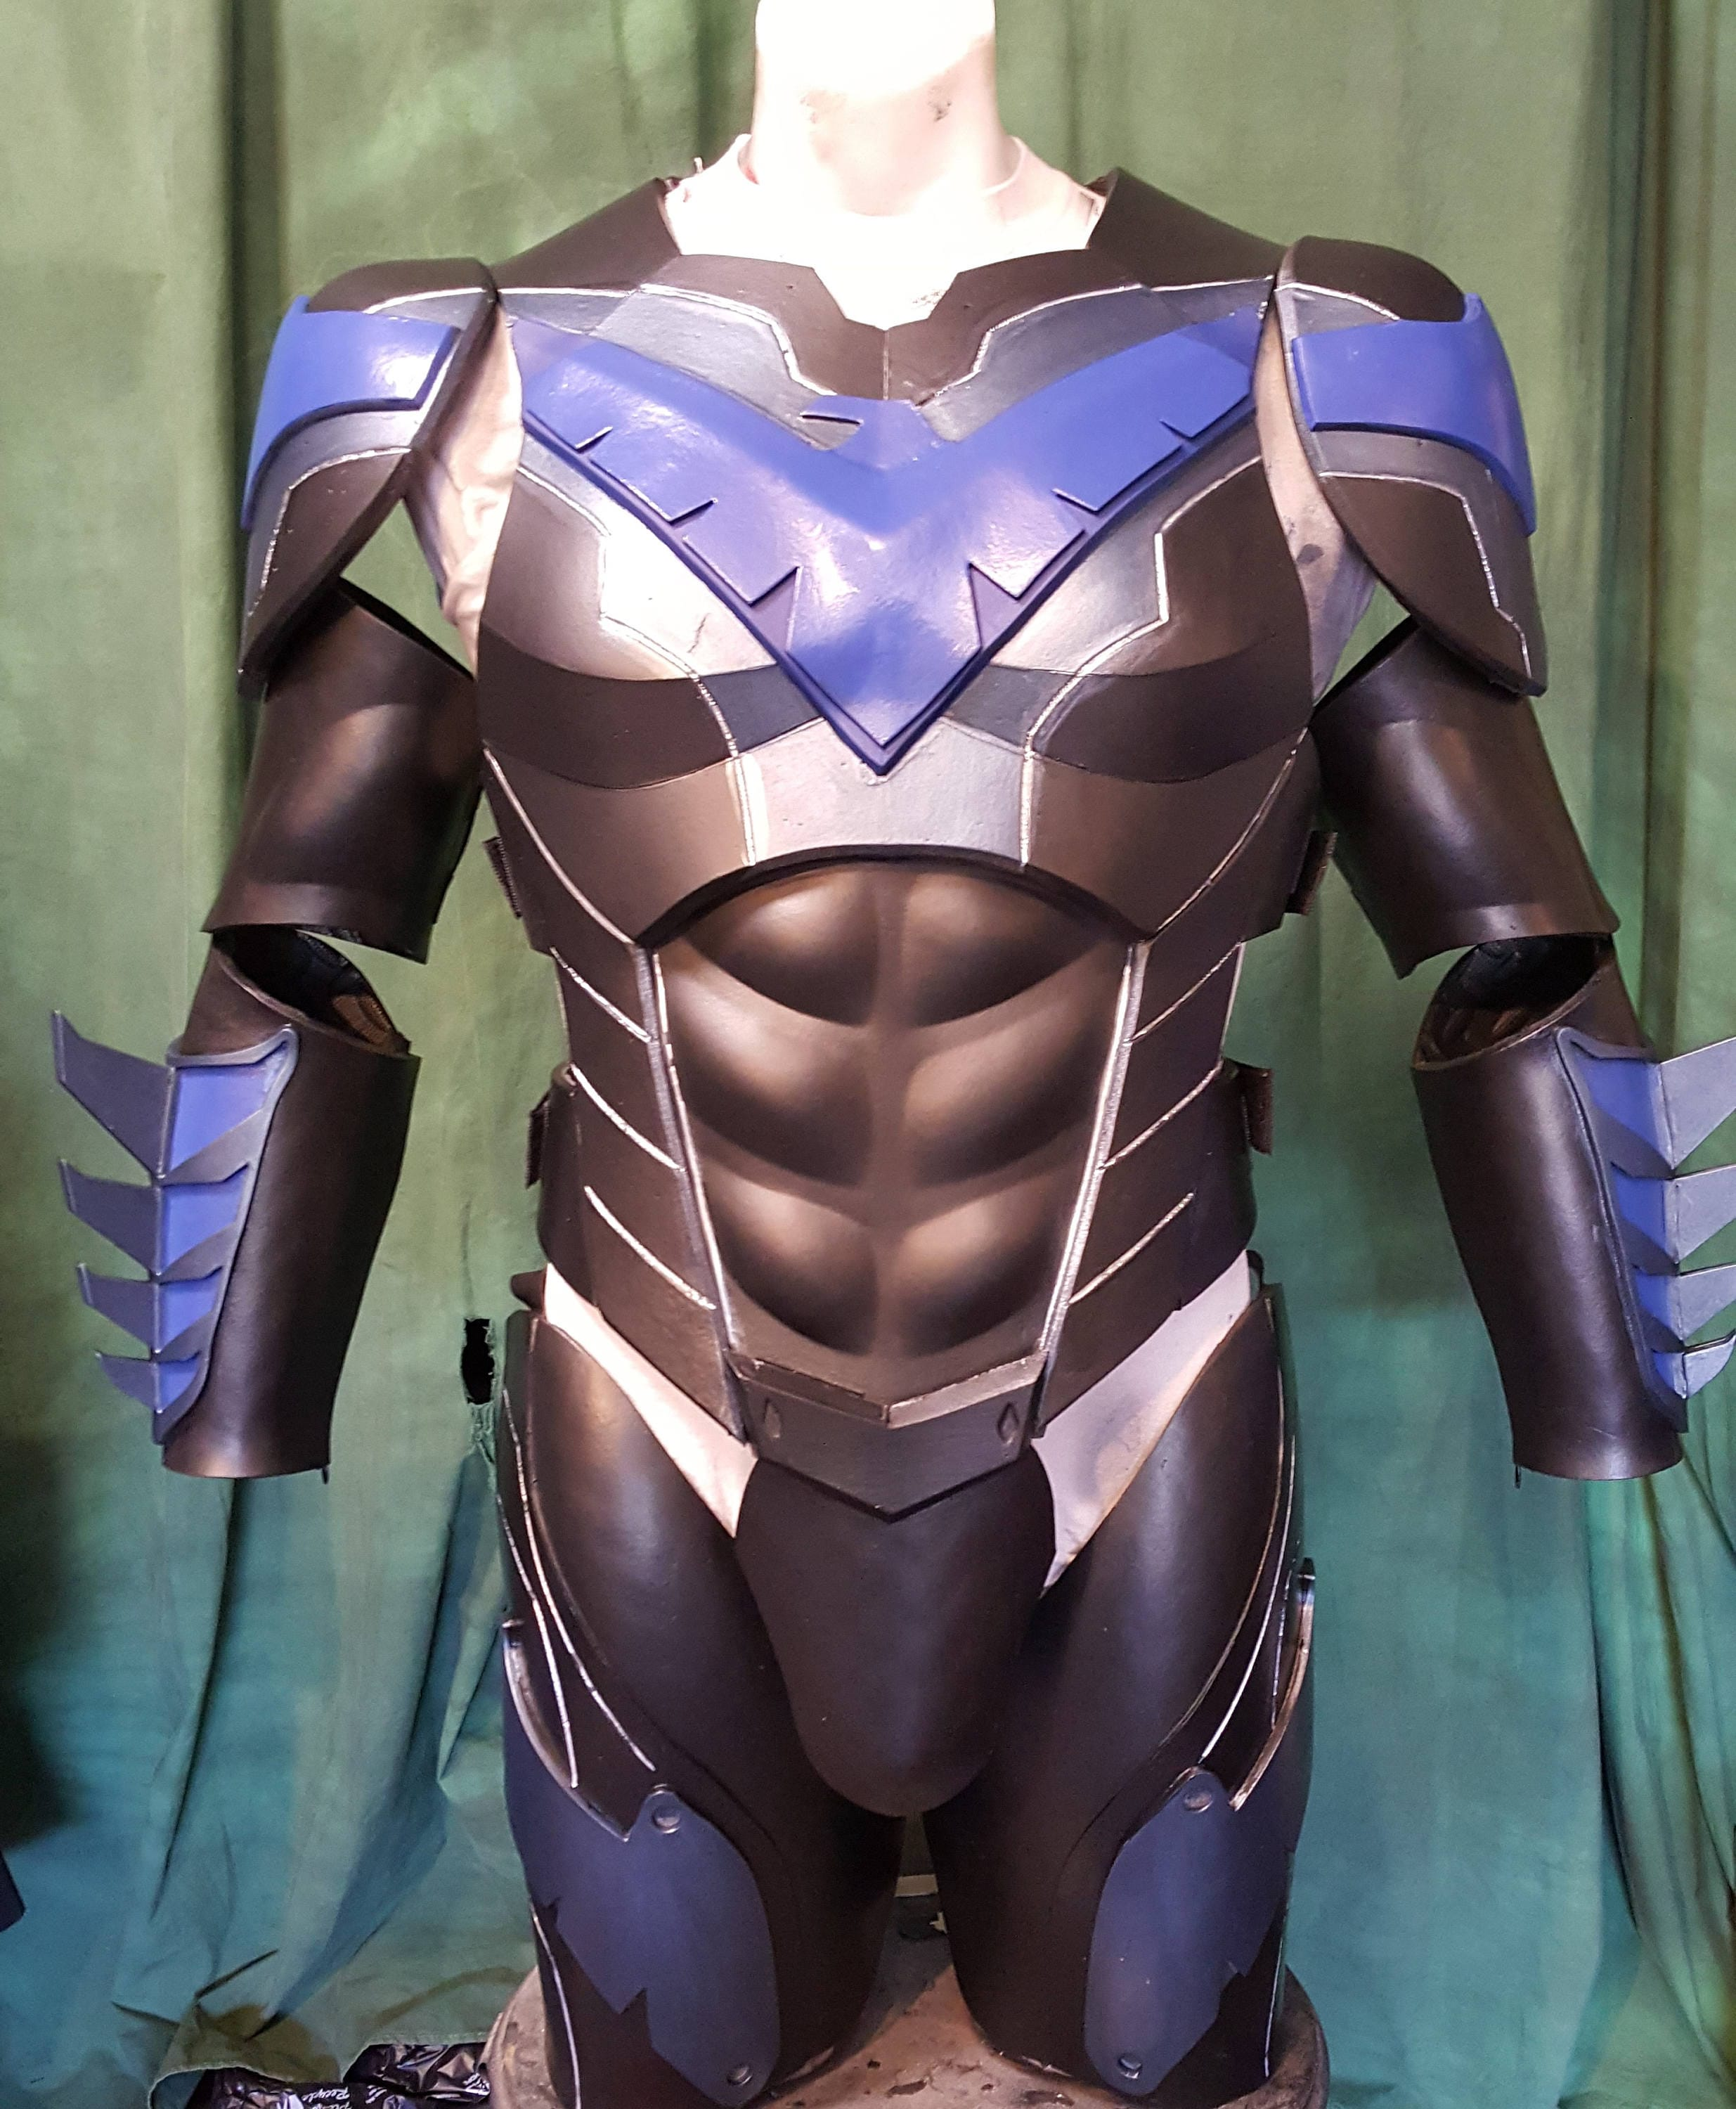 nightwlng complete foam armor templates from xiengprod on etsy studio